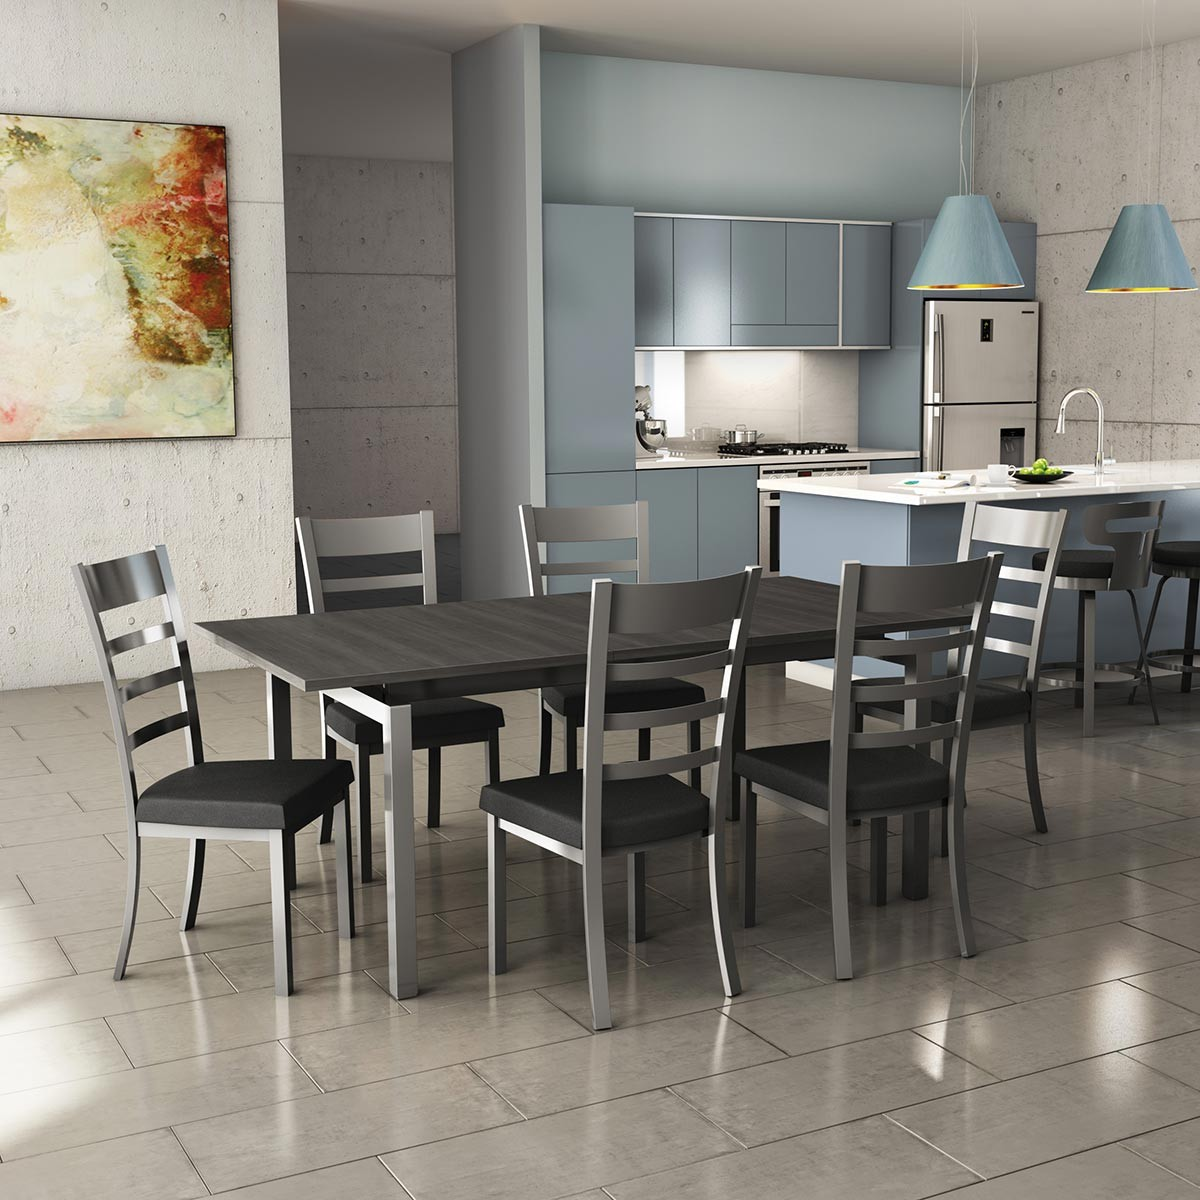 Kitchen Tables With Chairs: Amisco Owen Dining Chair From $201.00 By Amisco